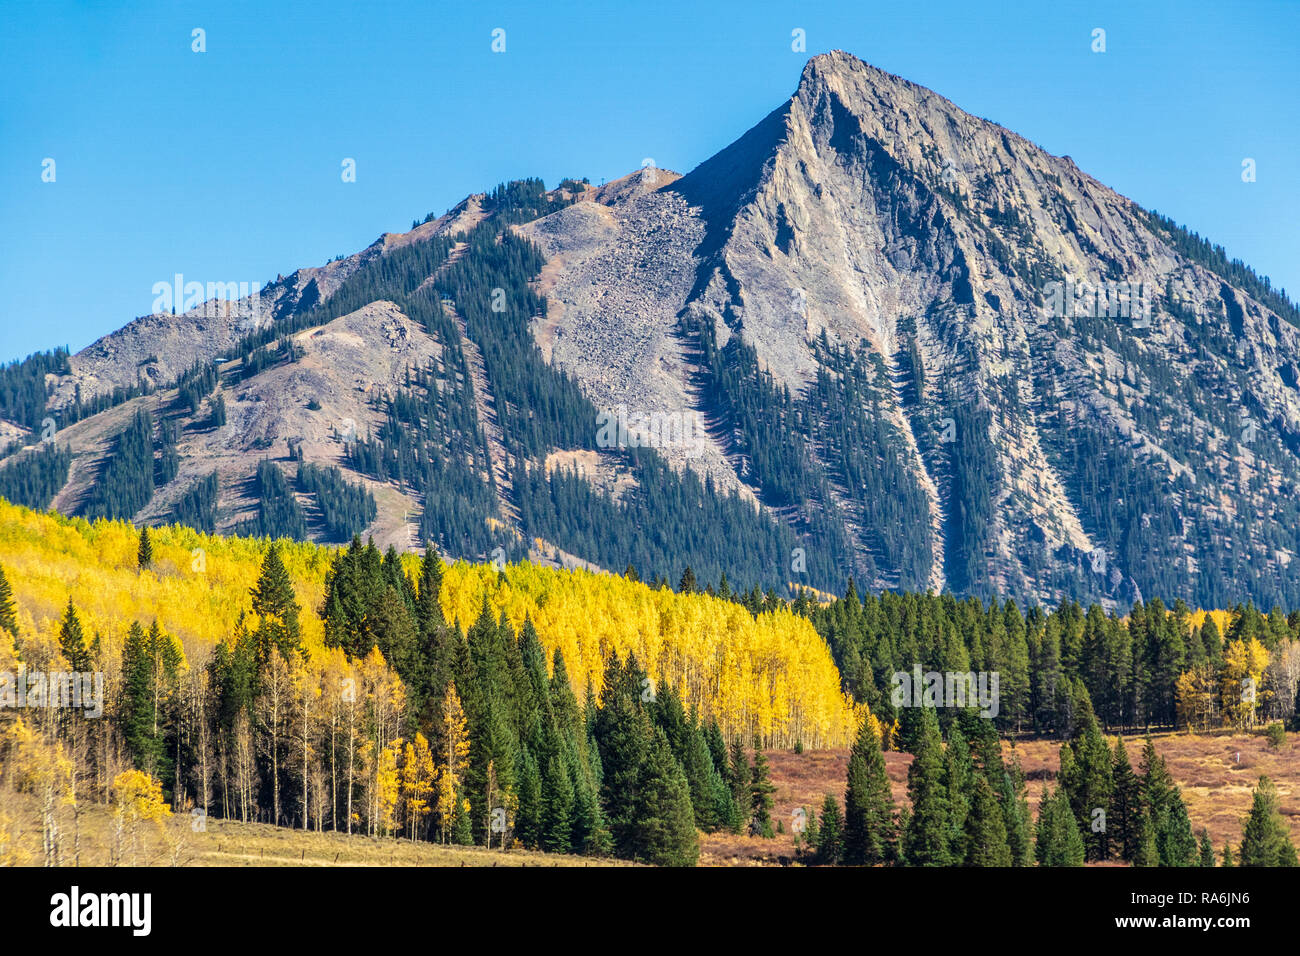 Crested Butte Mountain (or Mount Crested Butte) in Colorado in autumn. Stock Photo